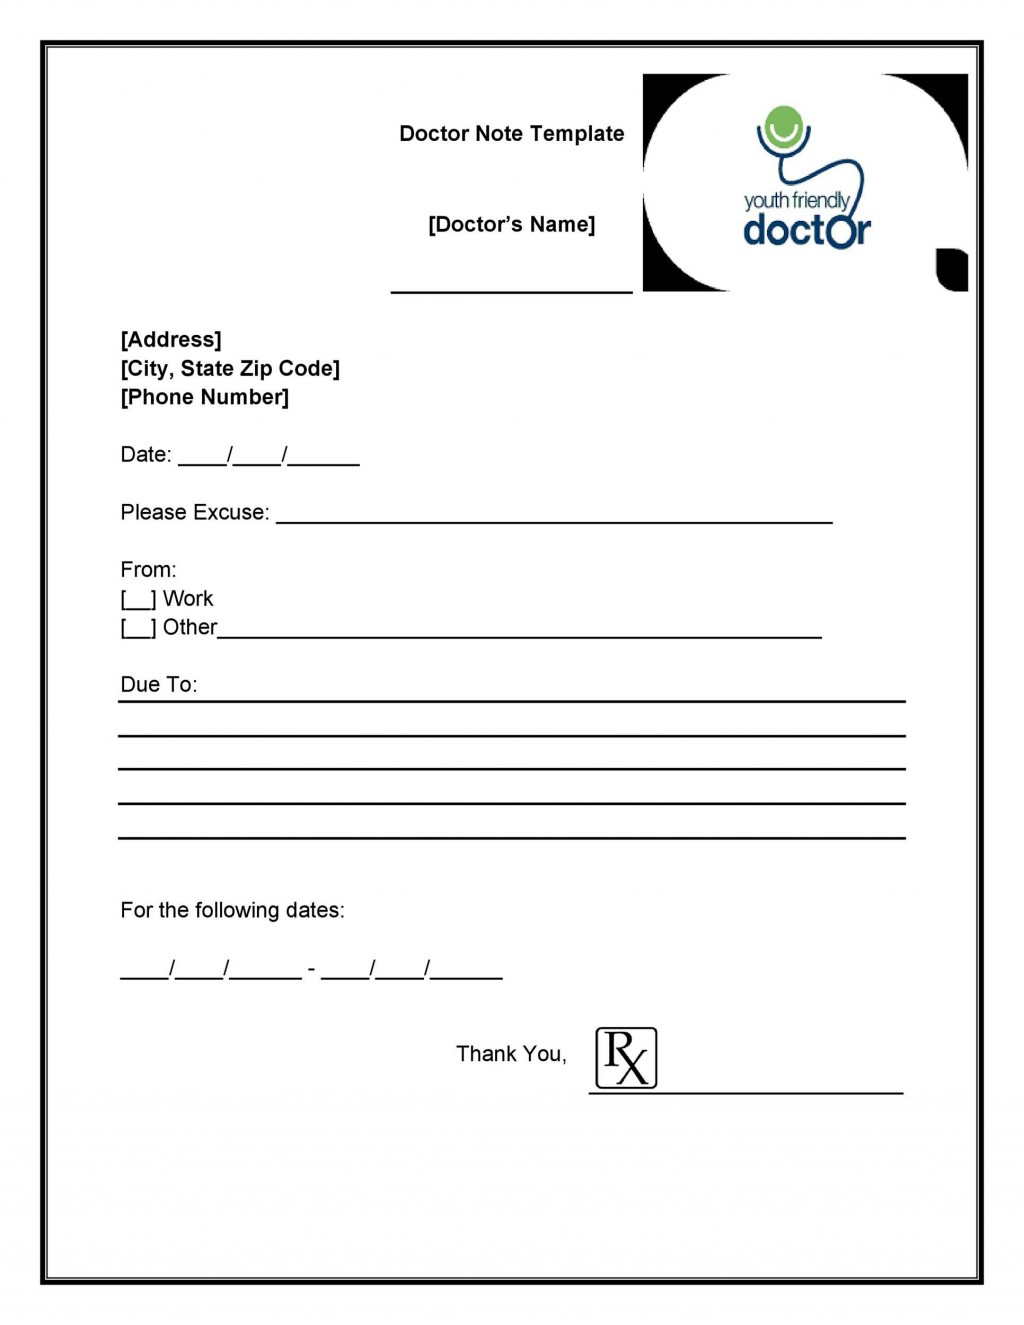 003 Phenomenal Doctor Note Template Word High Def  Fake Document For WorkLarge